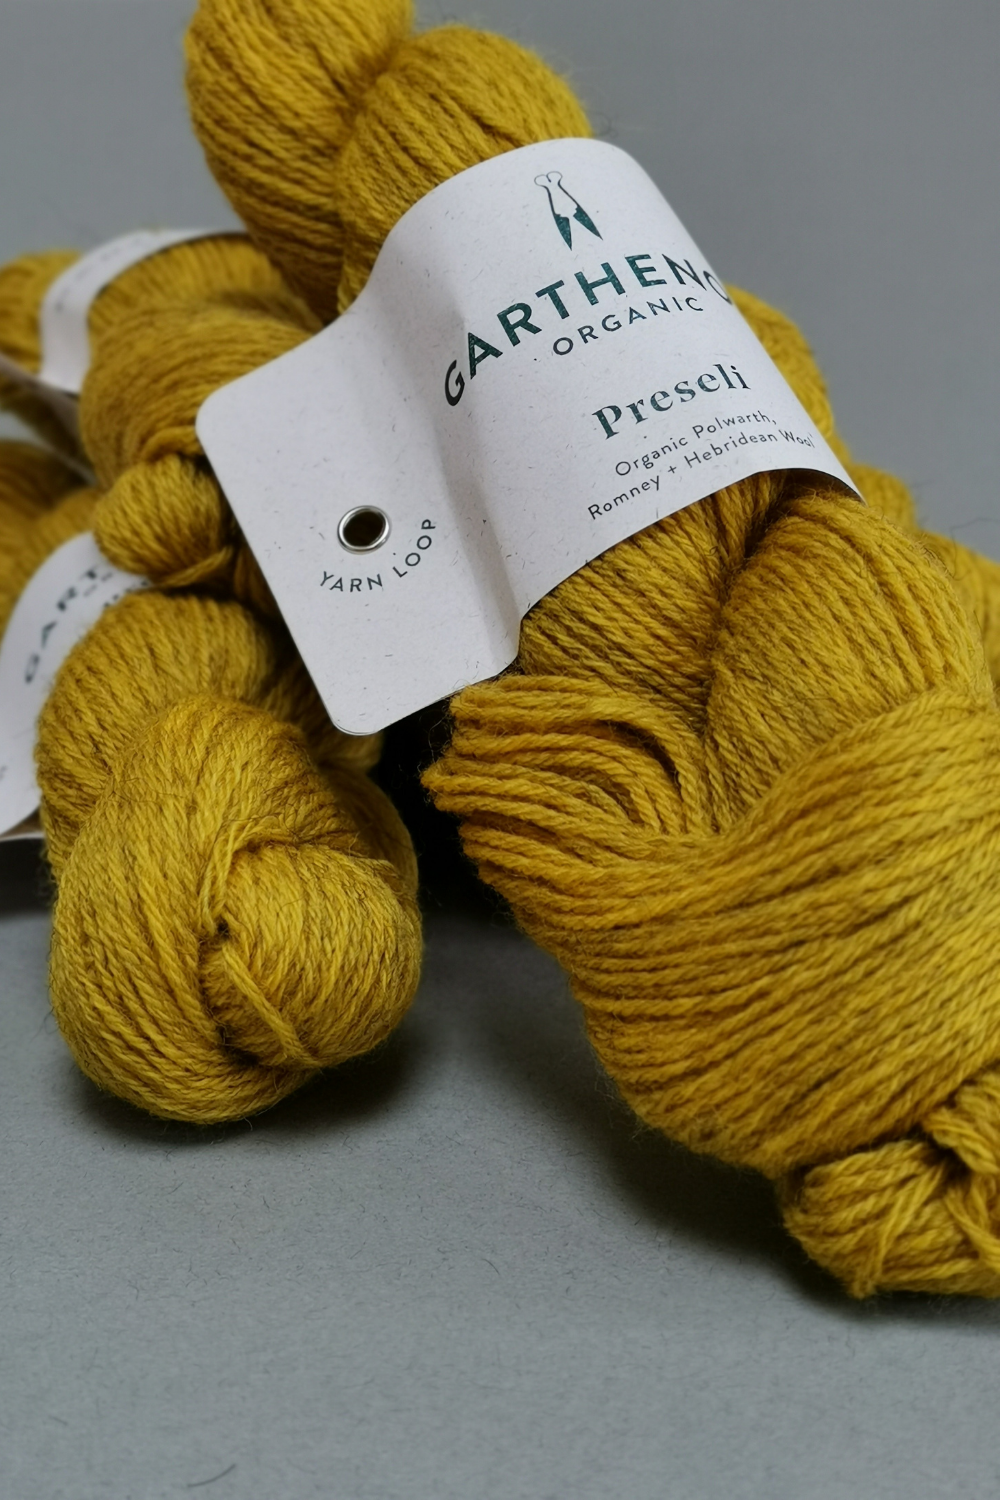 Skeins of a dirty yellow wool by Garthenor ona. grey background